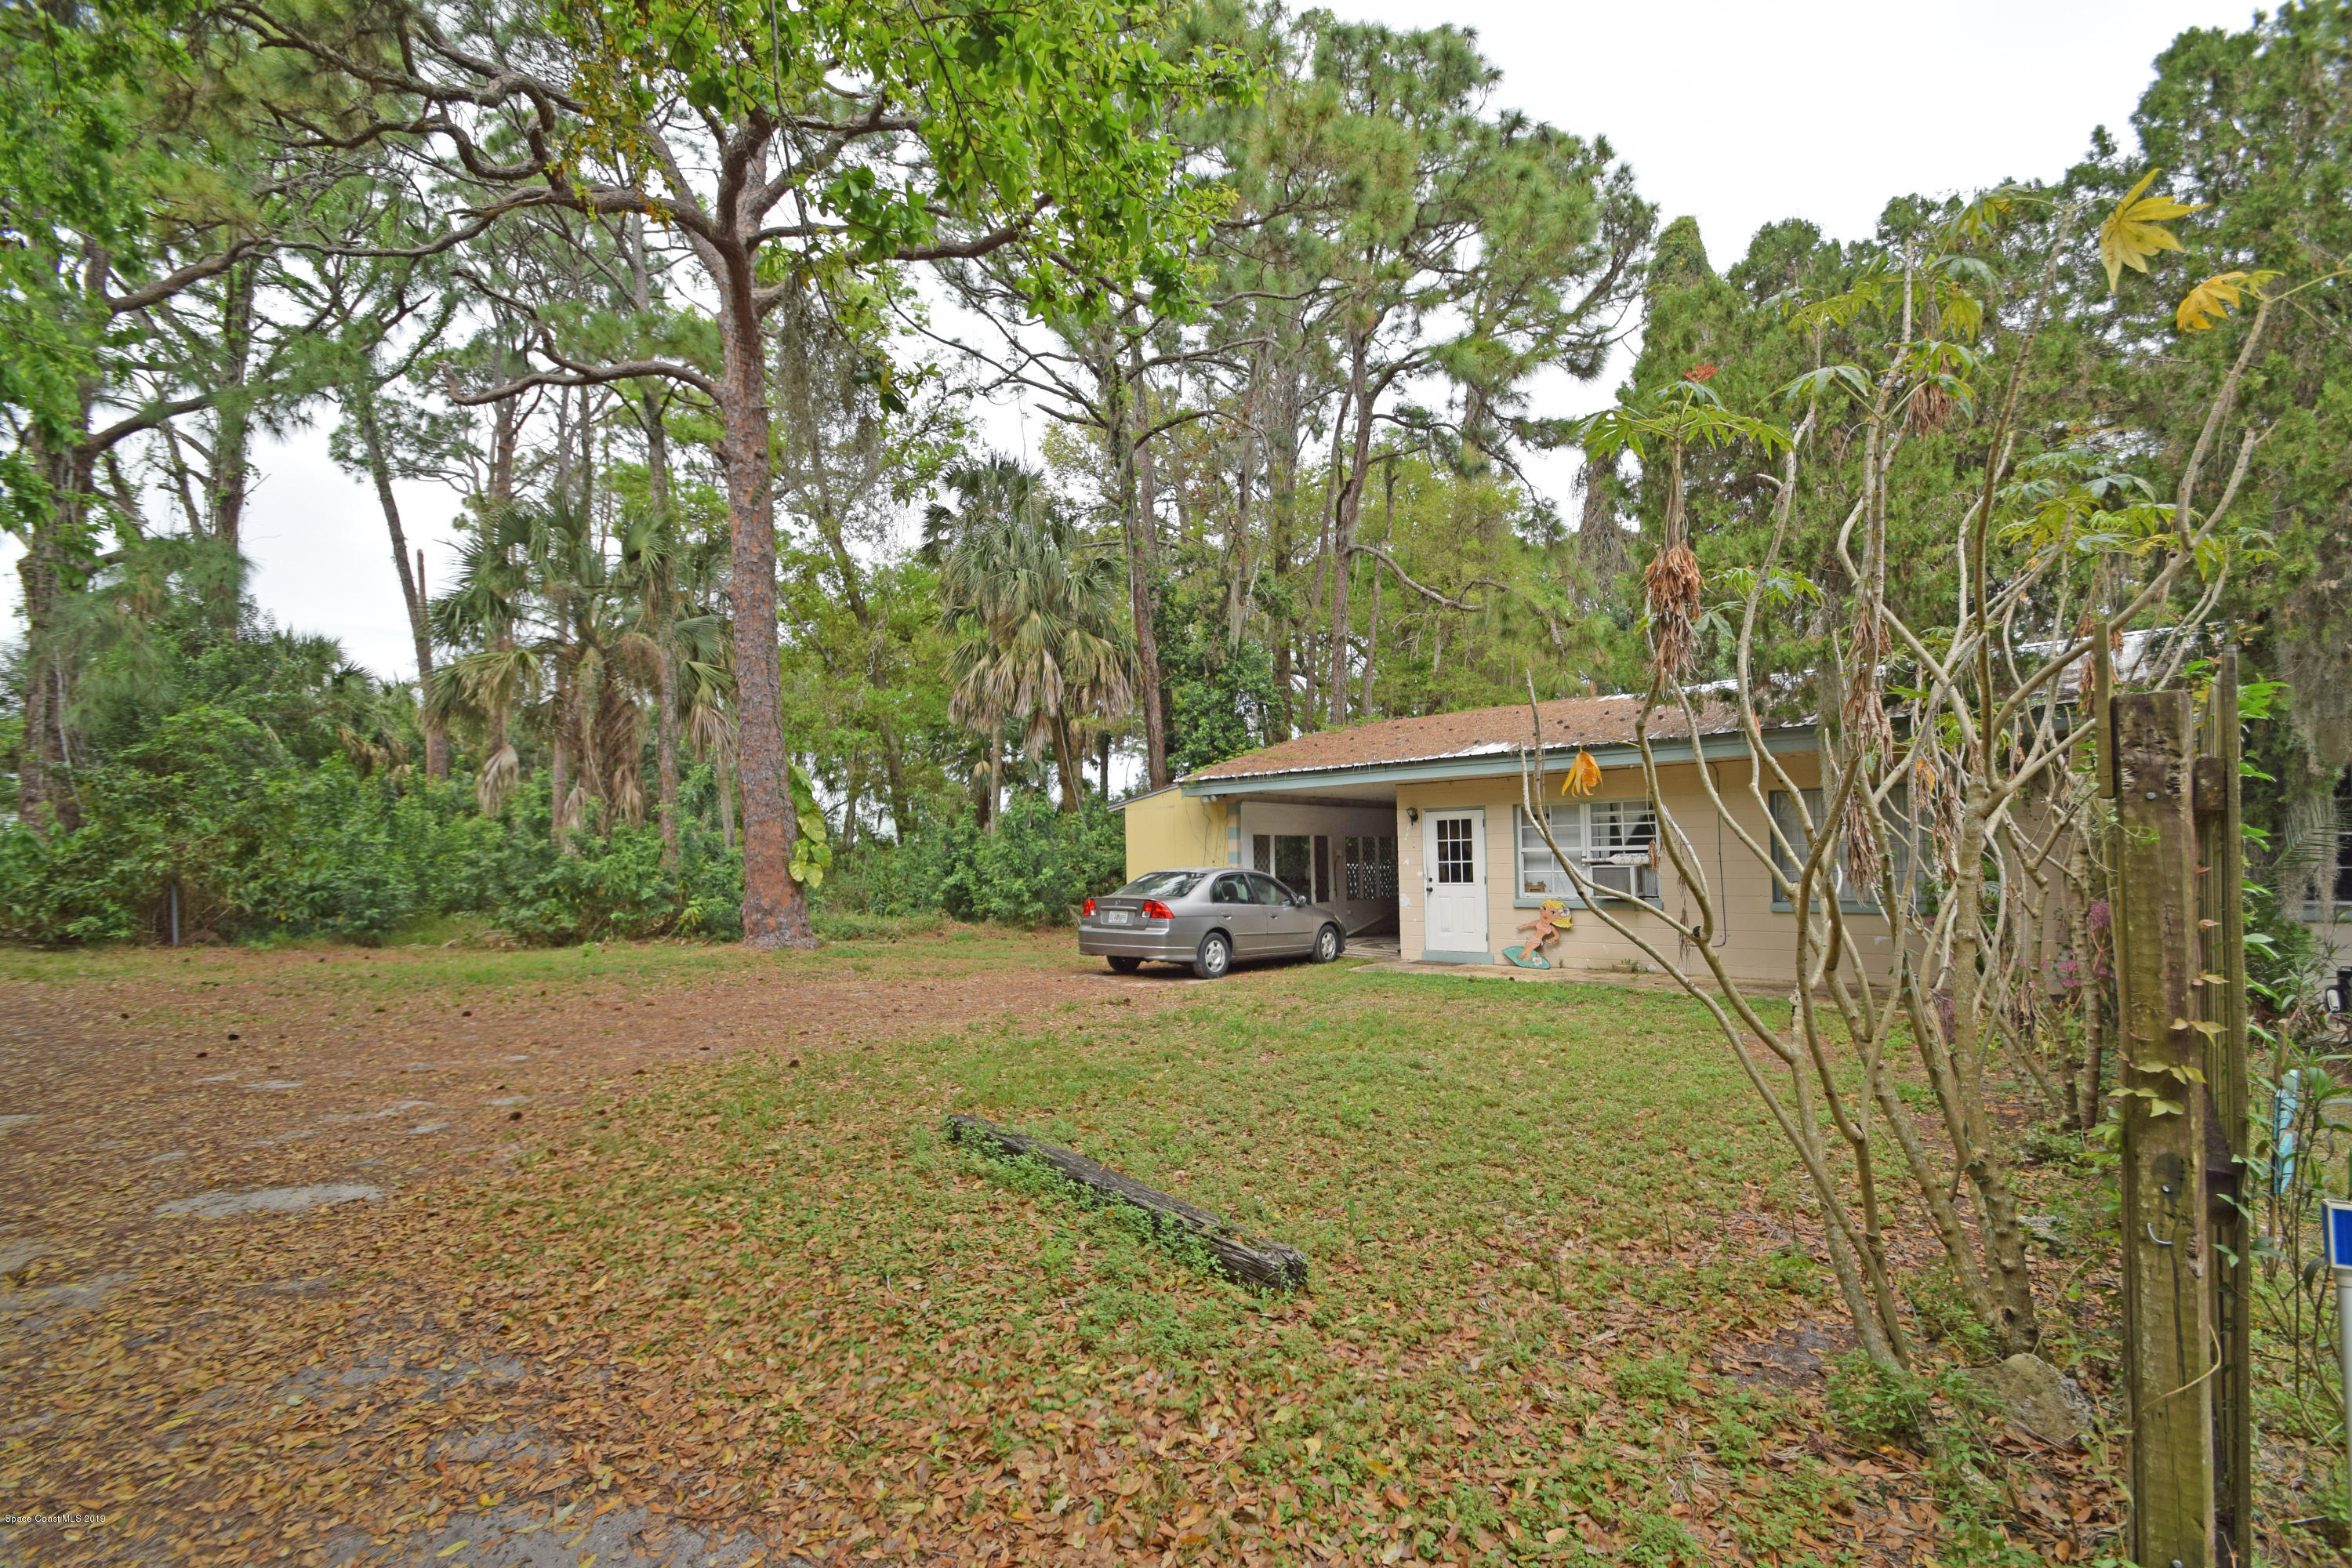 Multi-Family Homes for Sale at 7775 S Highway 1 Titusville, Florida 32780 United States